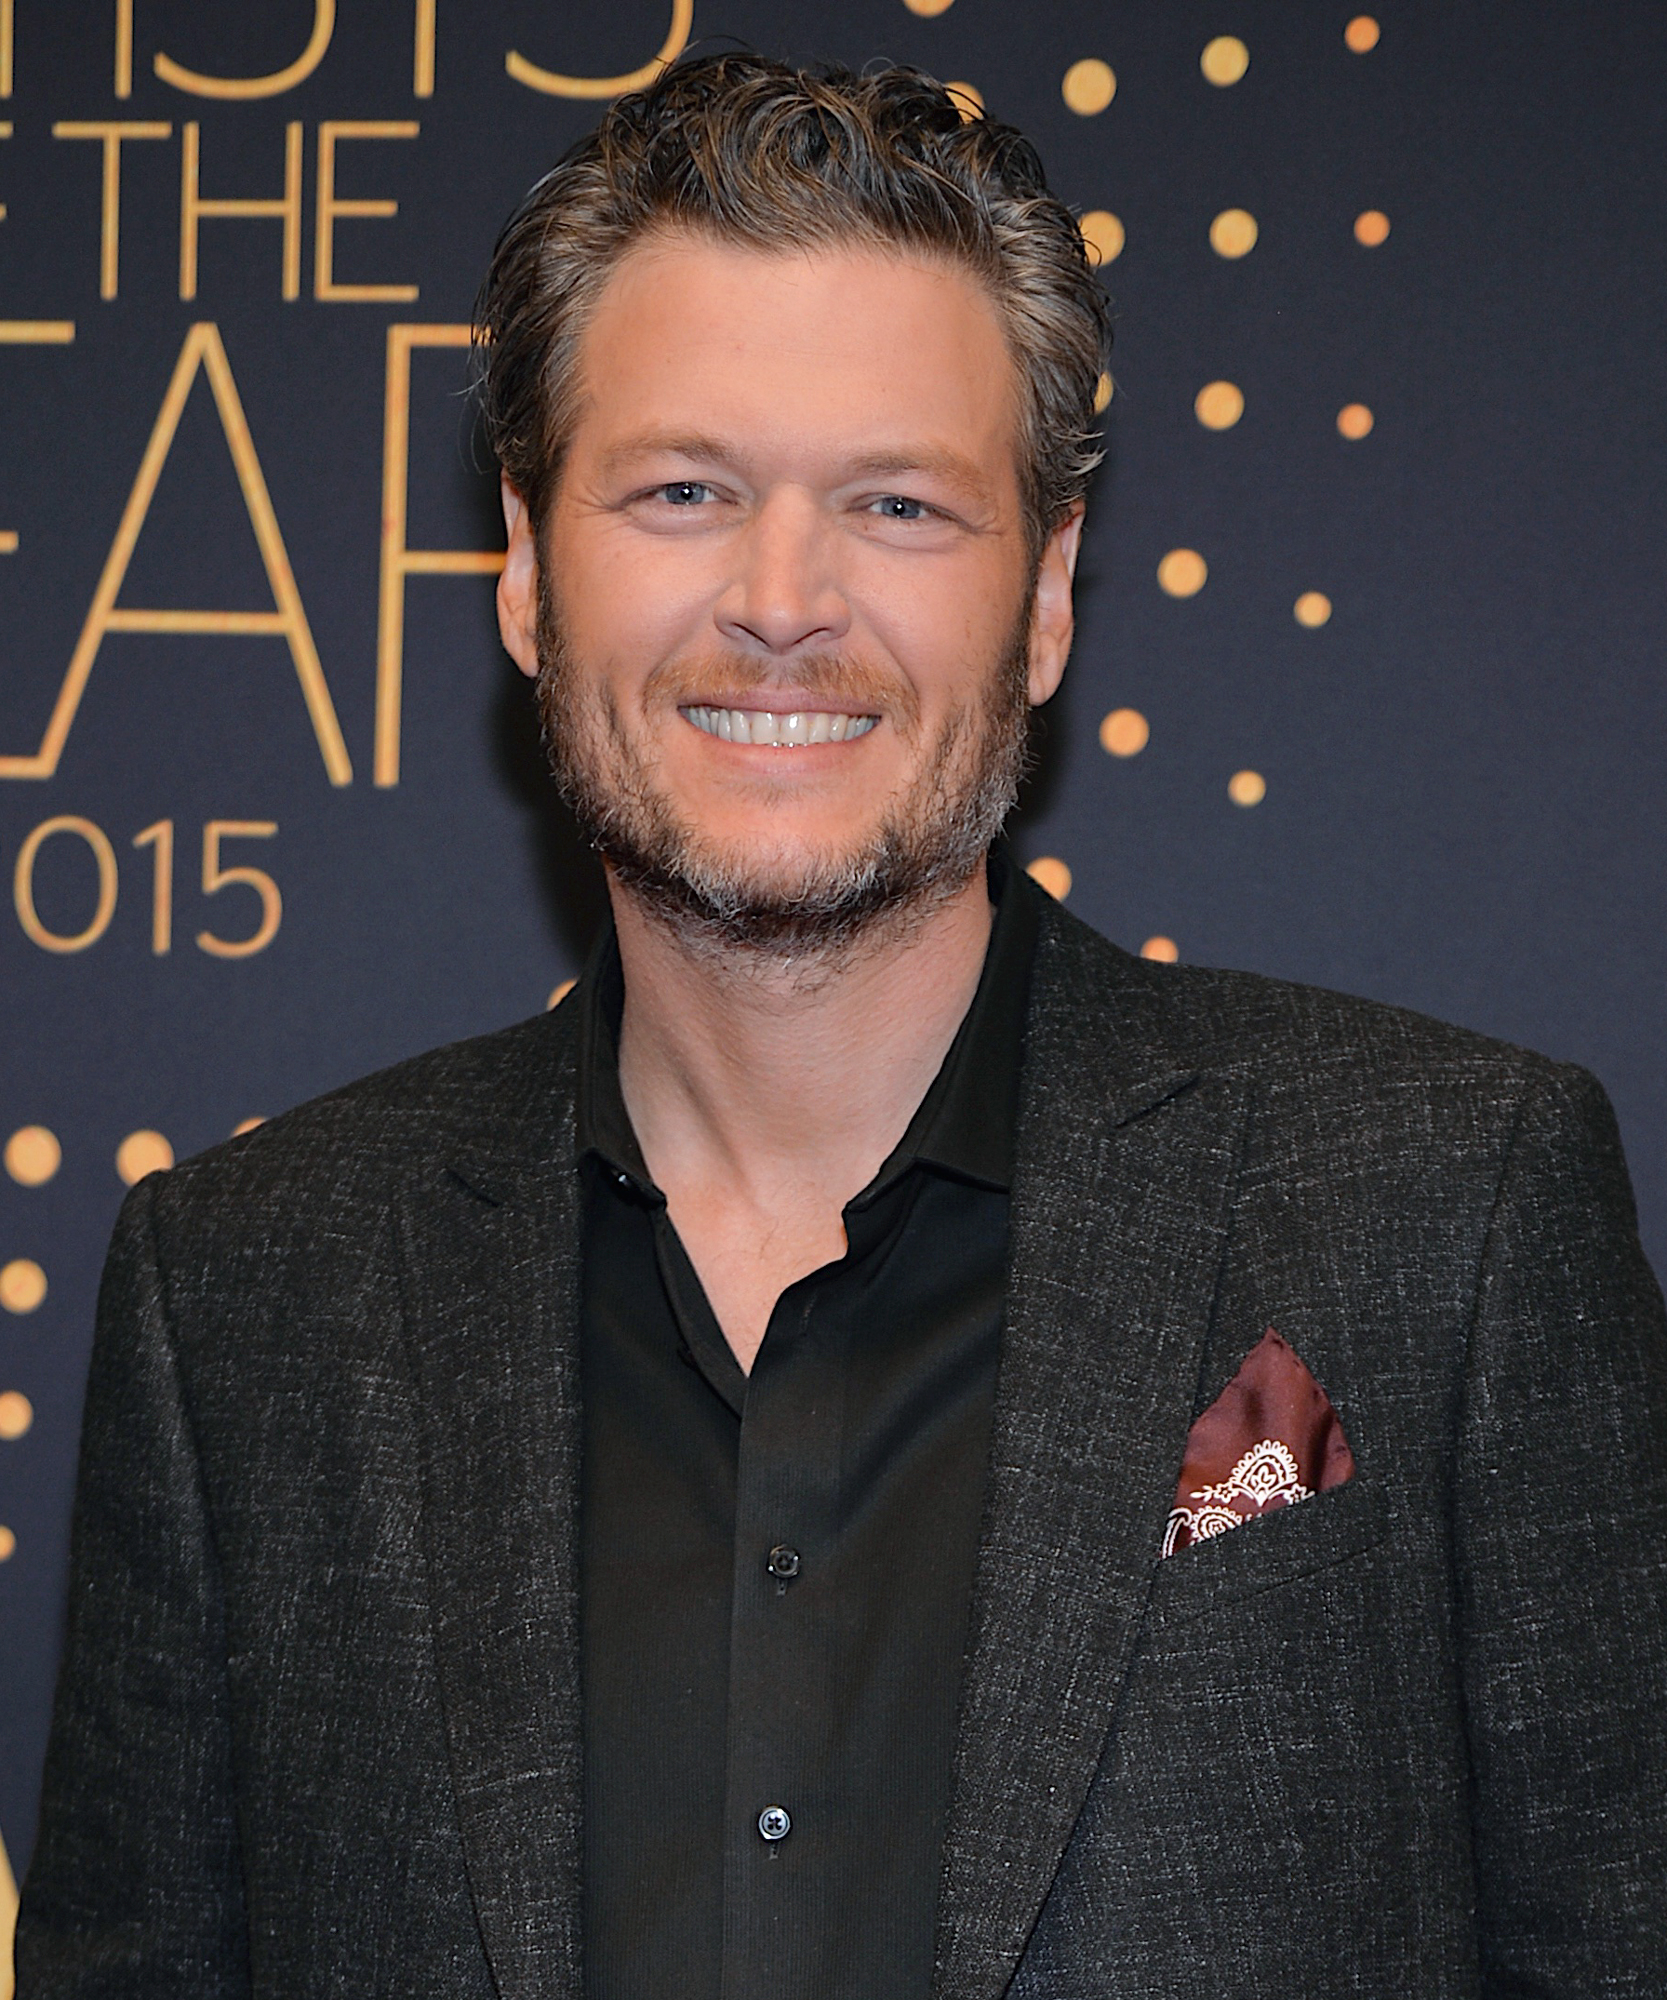 Blake Shelton Buys A New Nashville Home Instyle Com